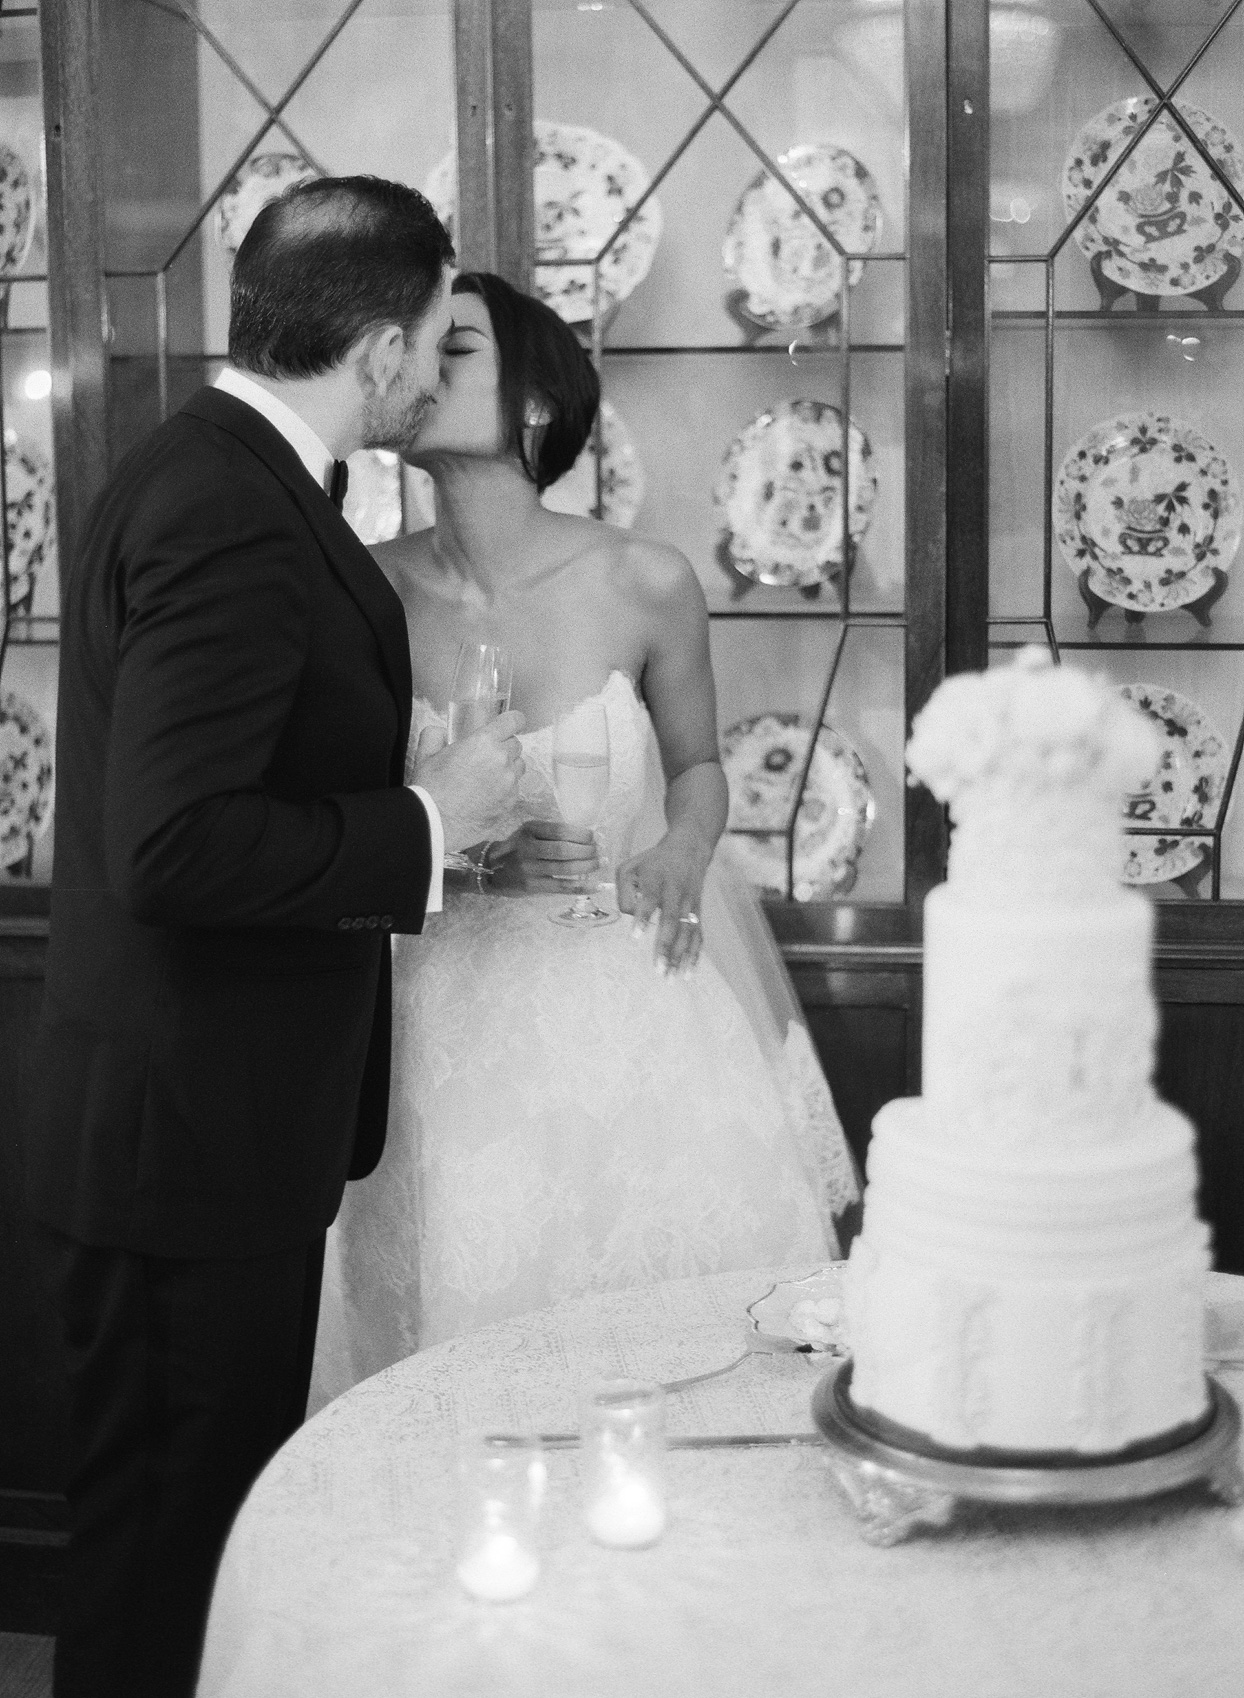 bride and groom kissing near cake during reception